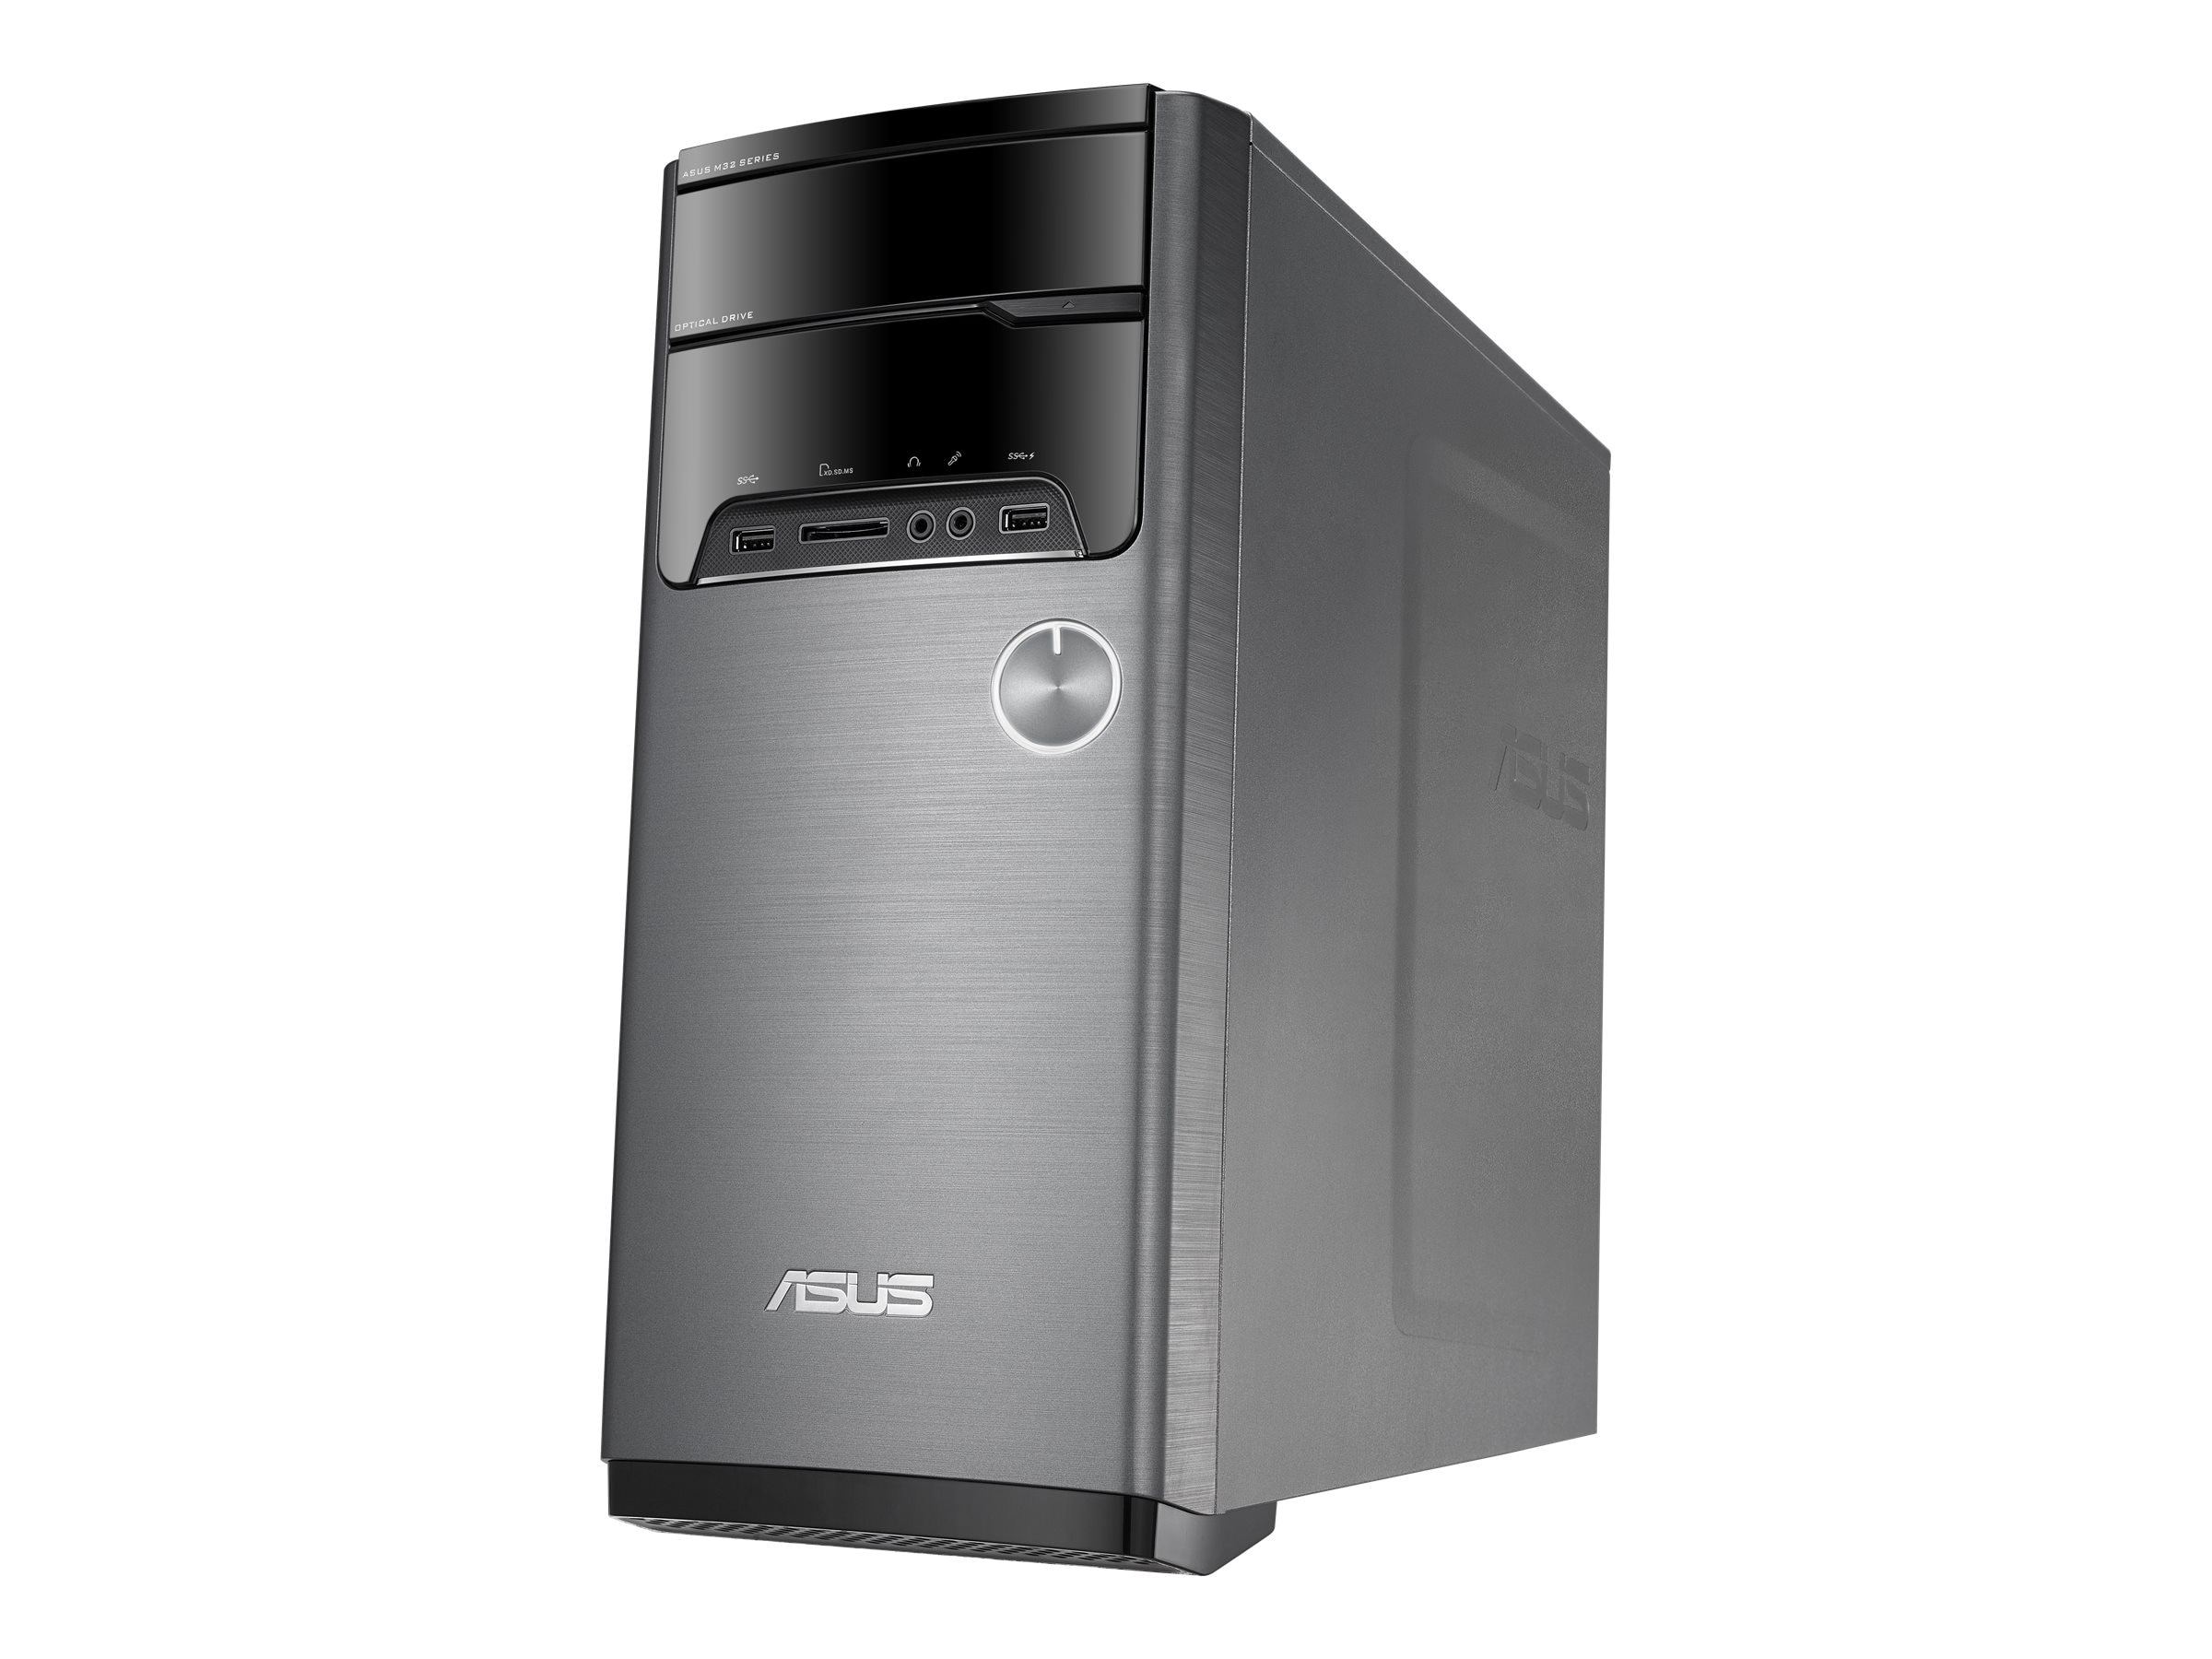 Asus Desktop PC Core i5-4460 12GB 2TB, M32AD-US025S, 17824284, Desktops